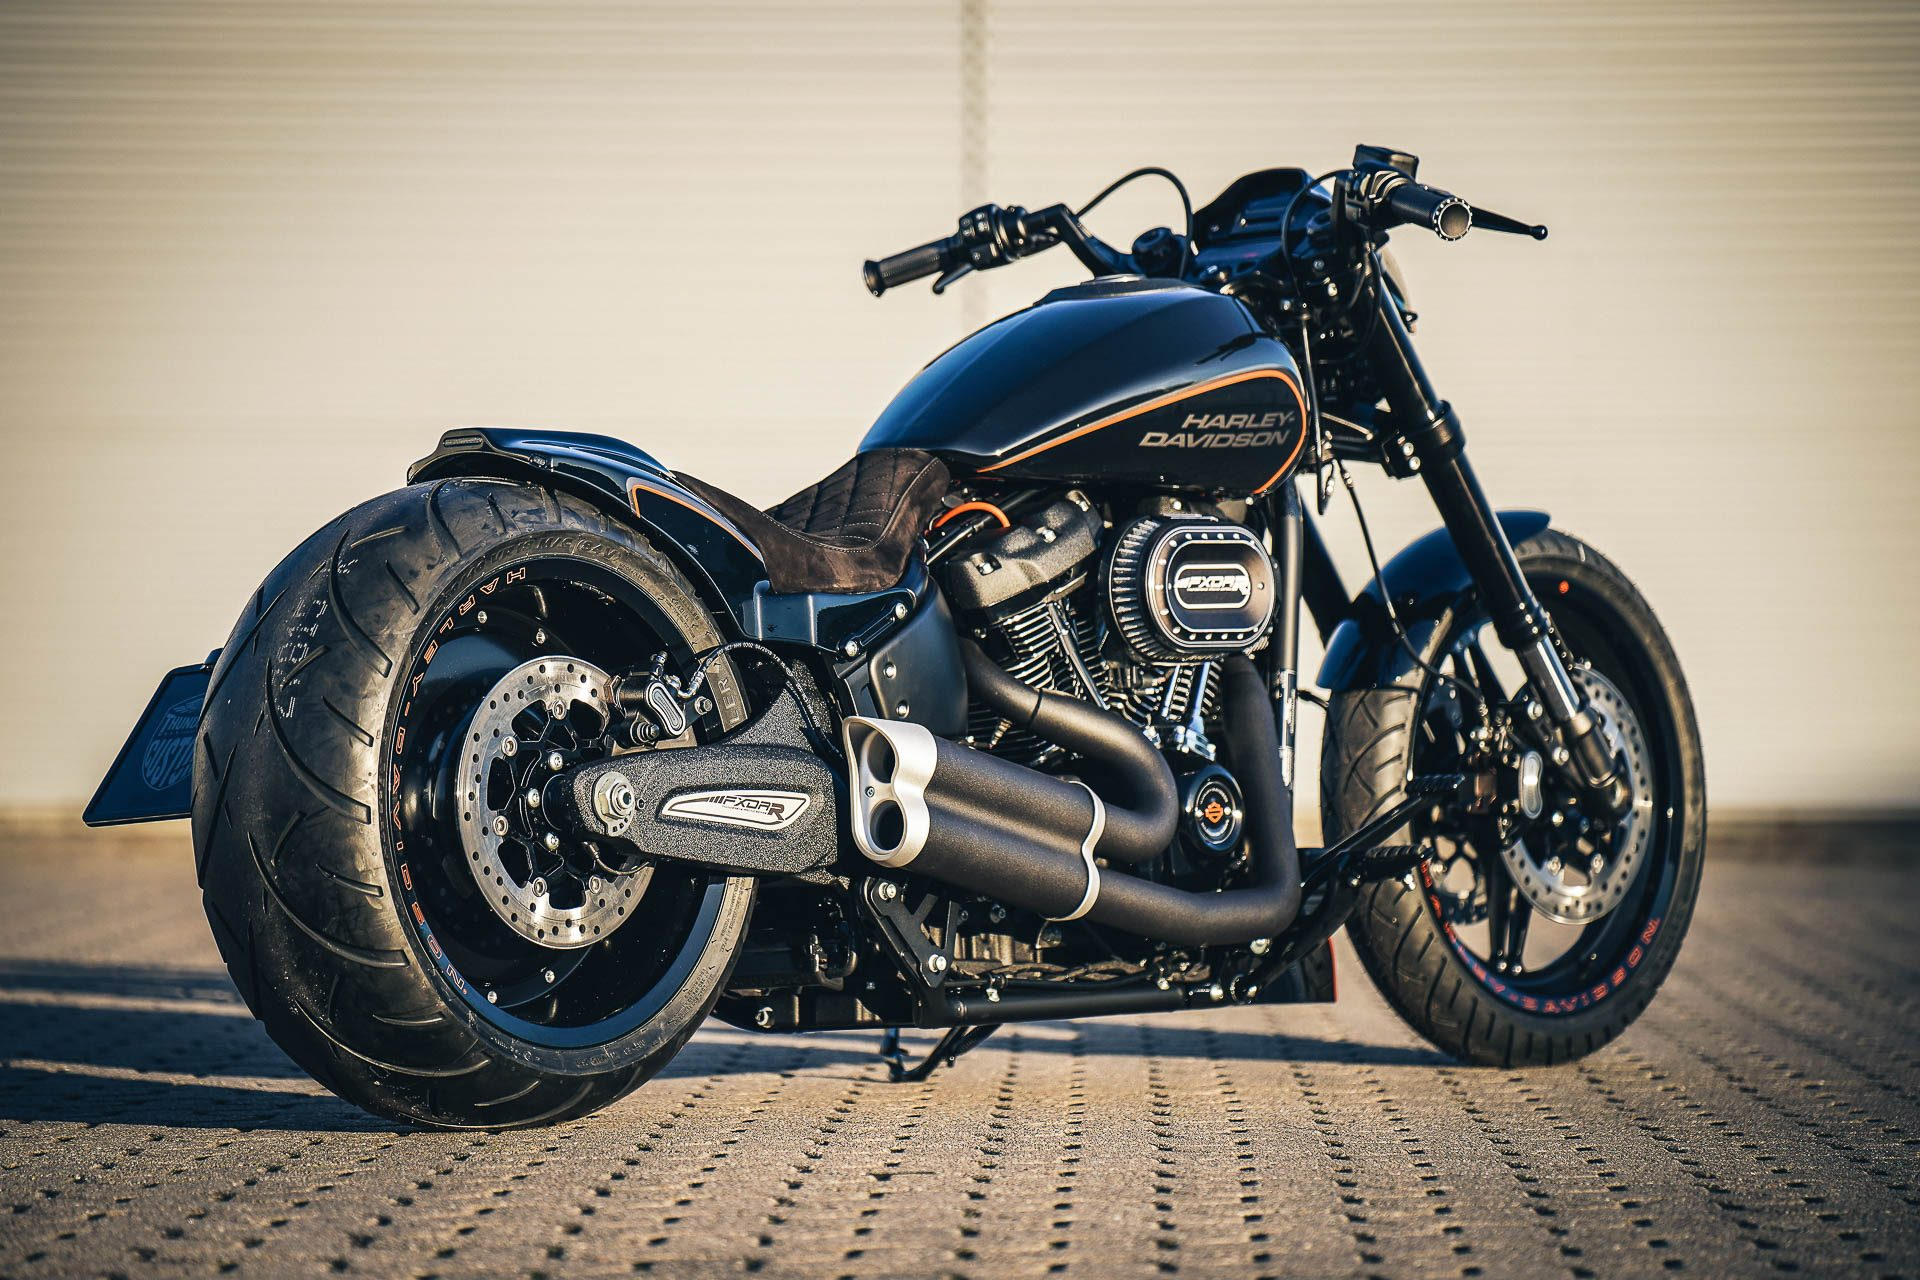 Spiegel Oval Thunderbike Destruction • First H-d Fxdr 114 Custombike Project